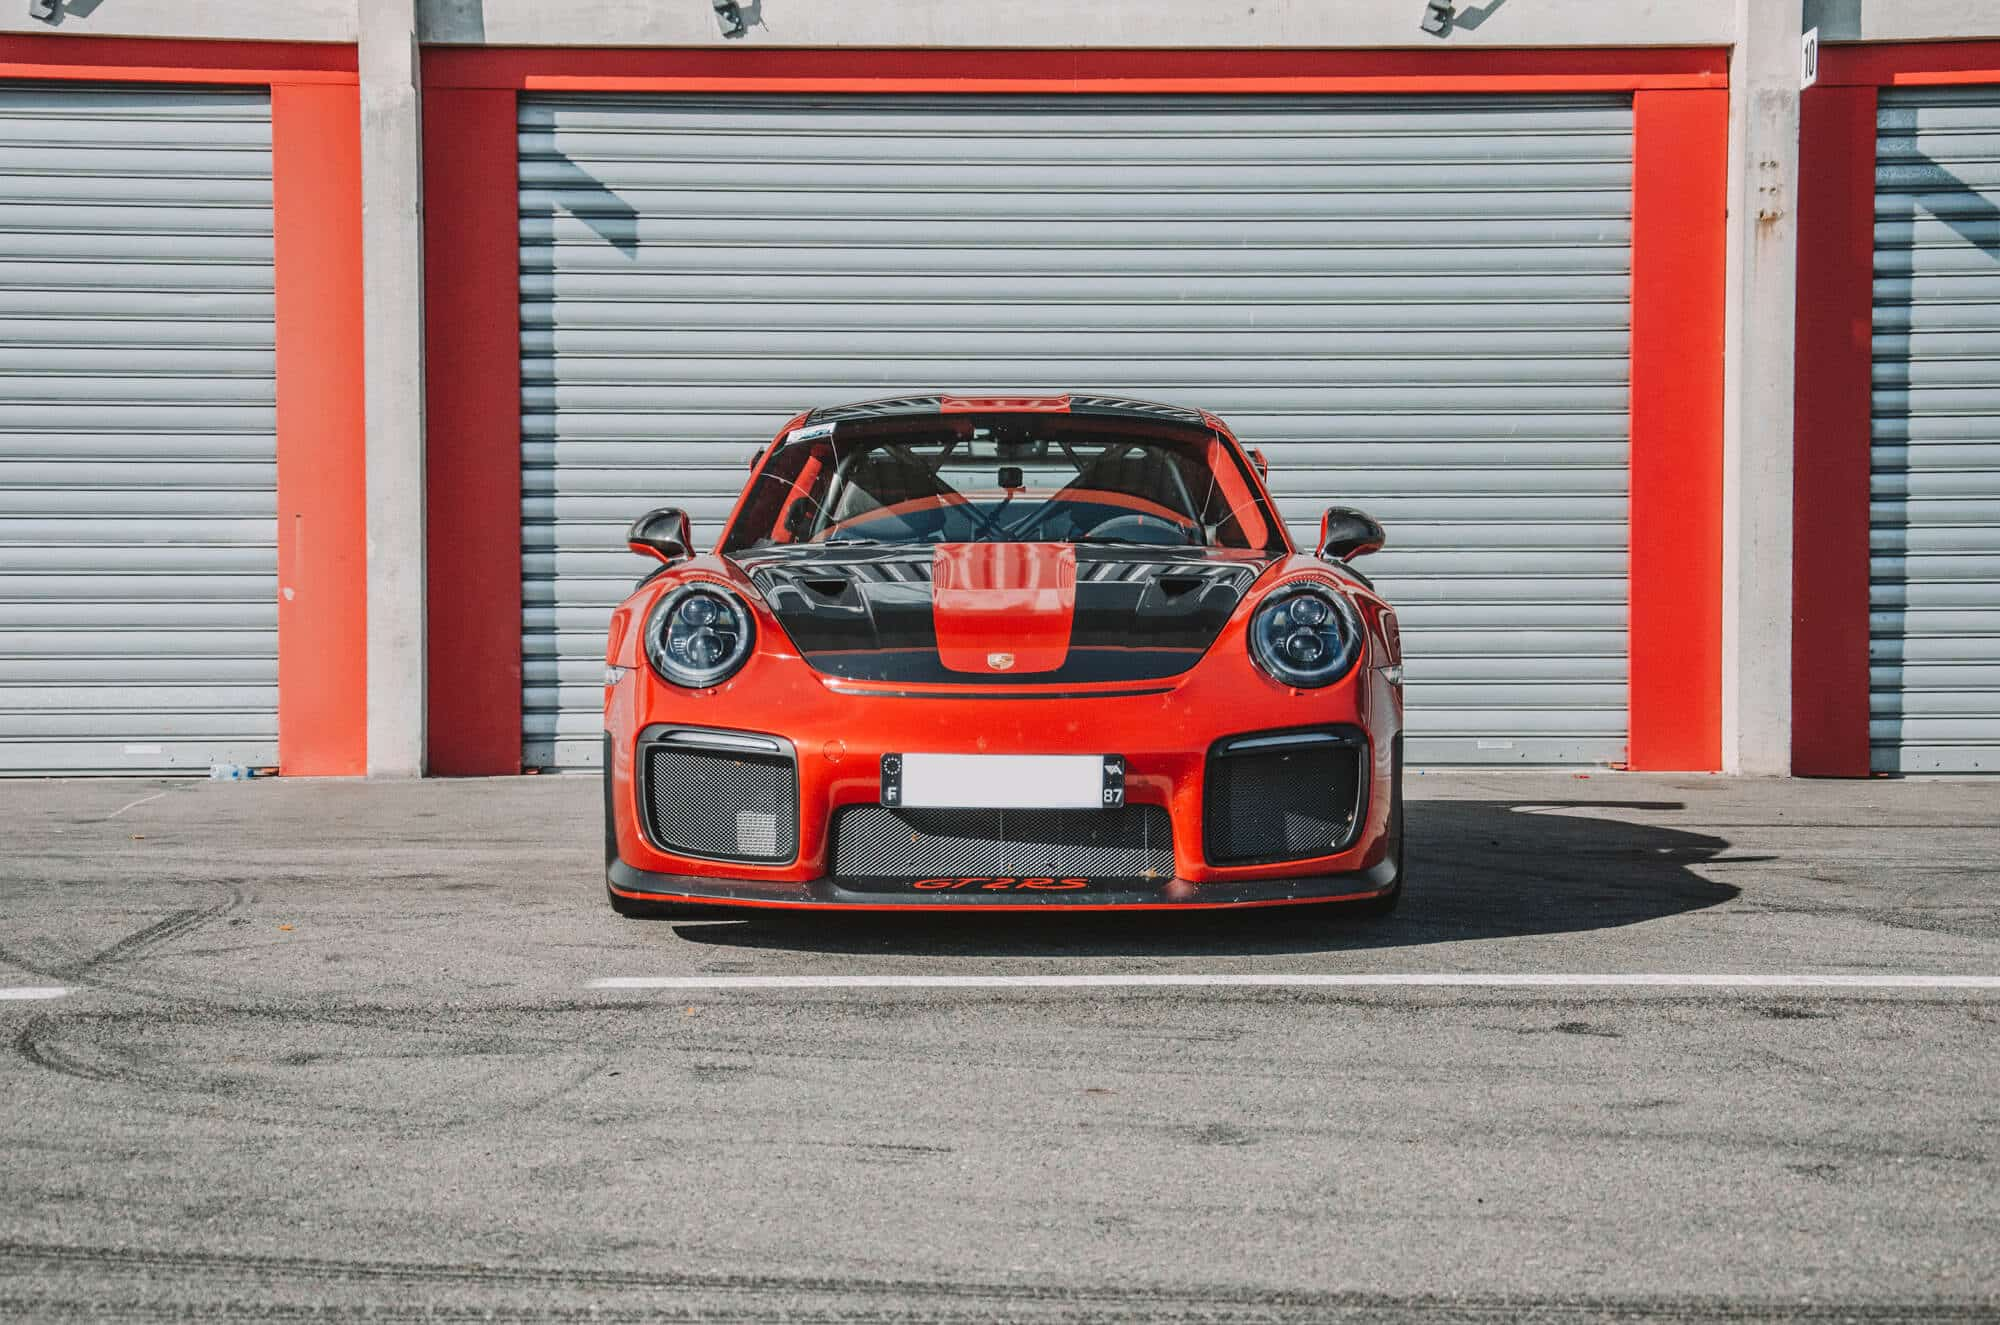 armada-racing-Trackday-experience-val-de-vienne-aout-2019-148